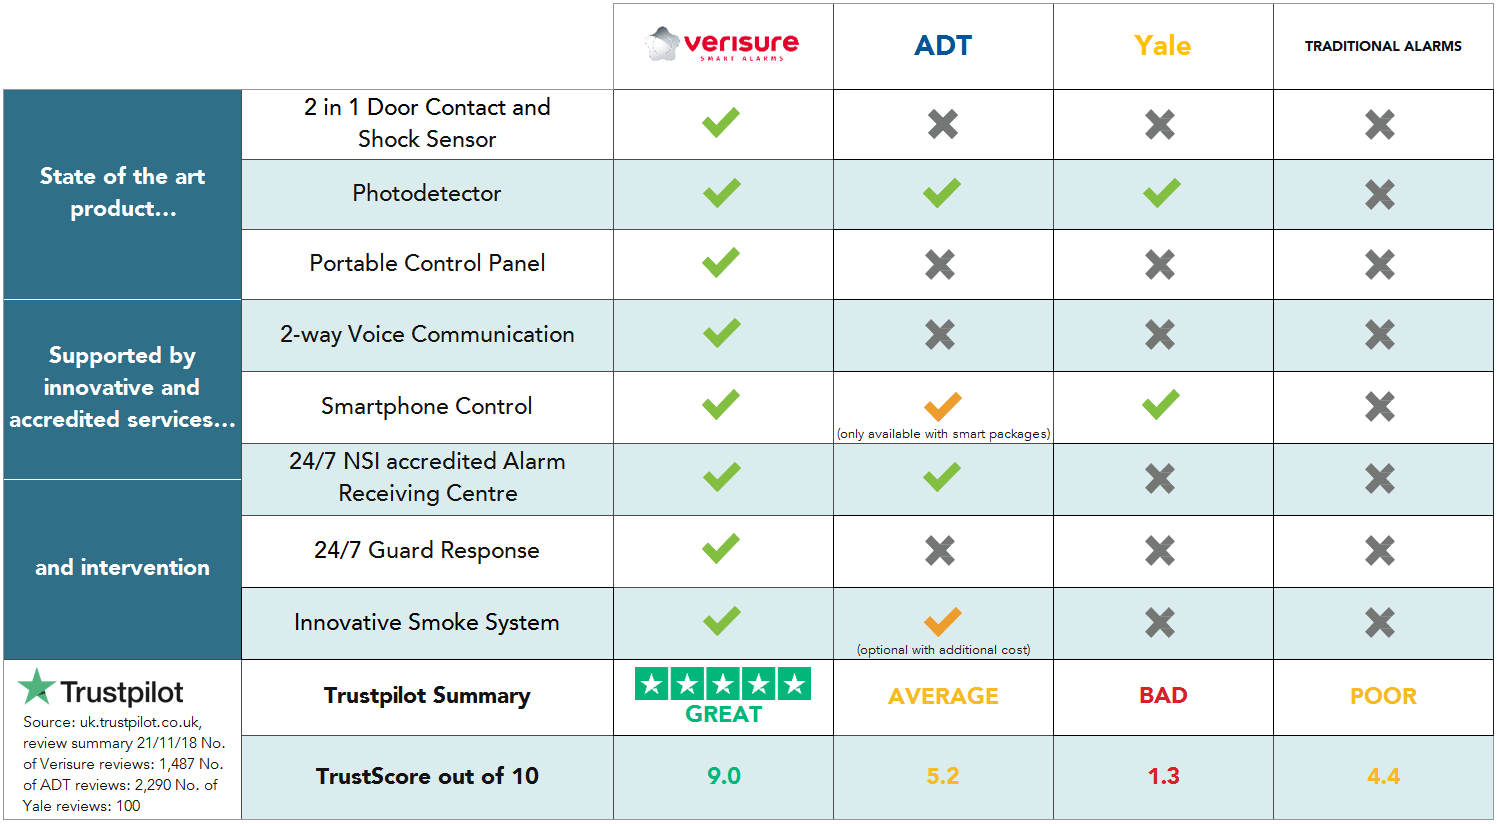 Verisure Comparison Chart